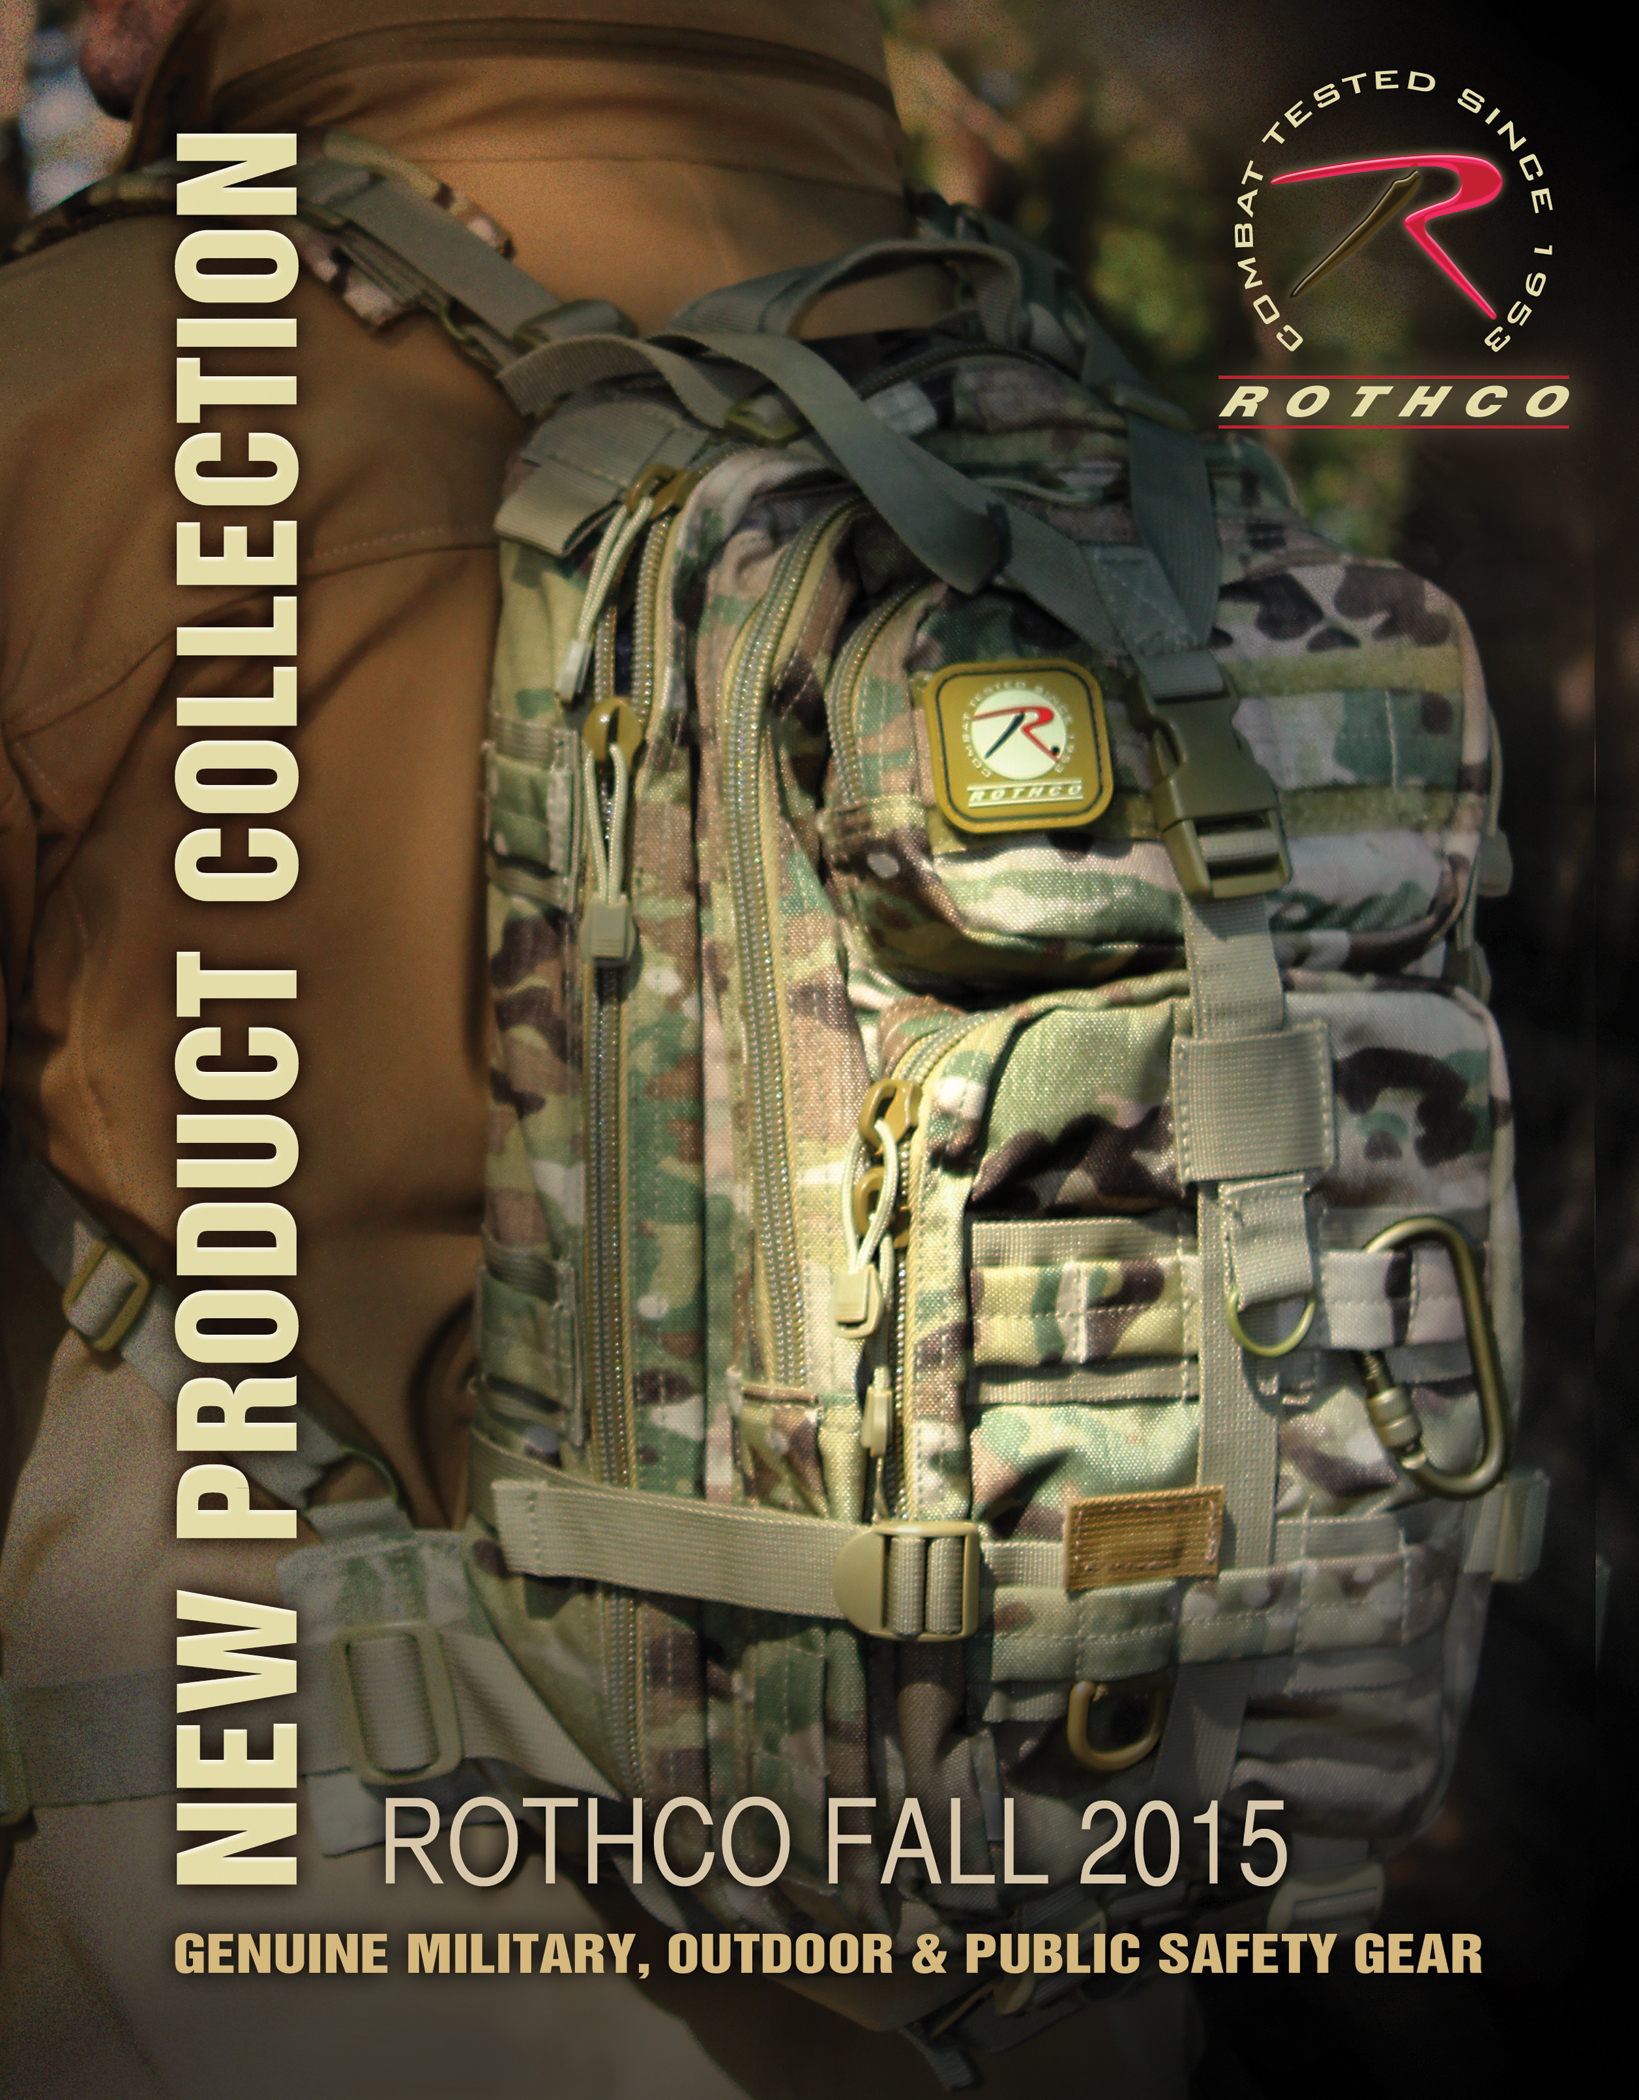 Rothco Catalog, 2015 Fall Collection